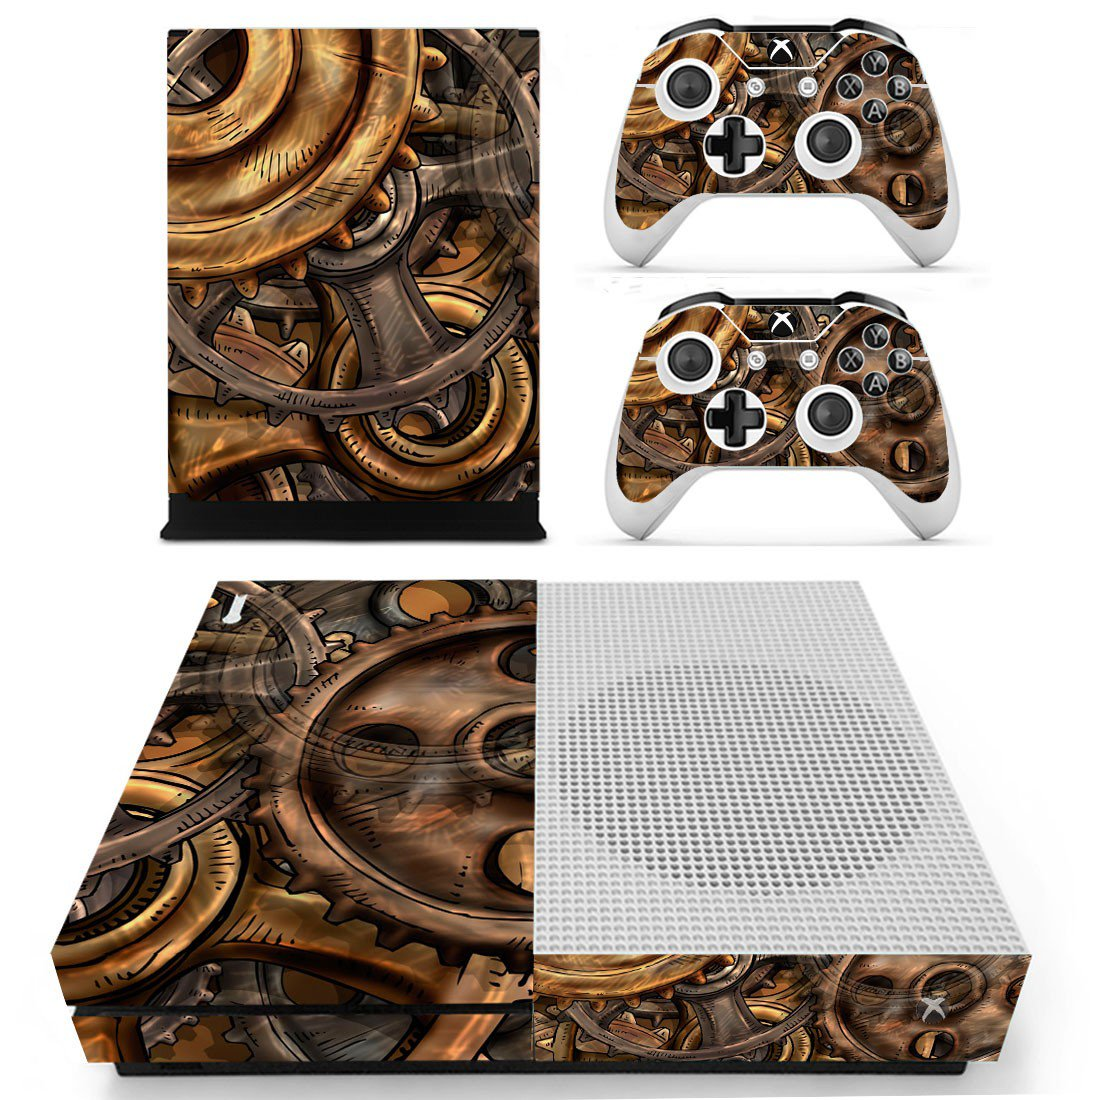 Copper Gears skin decal for Xbox one S console and controllers